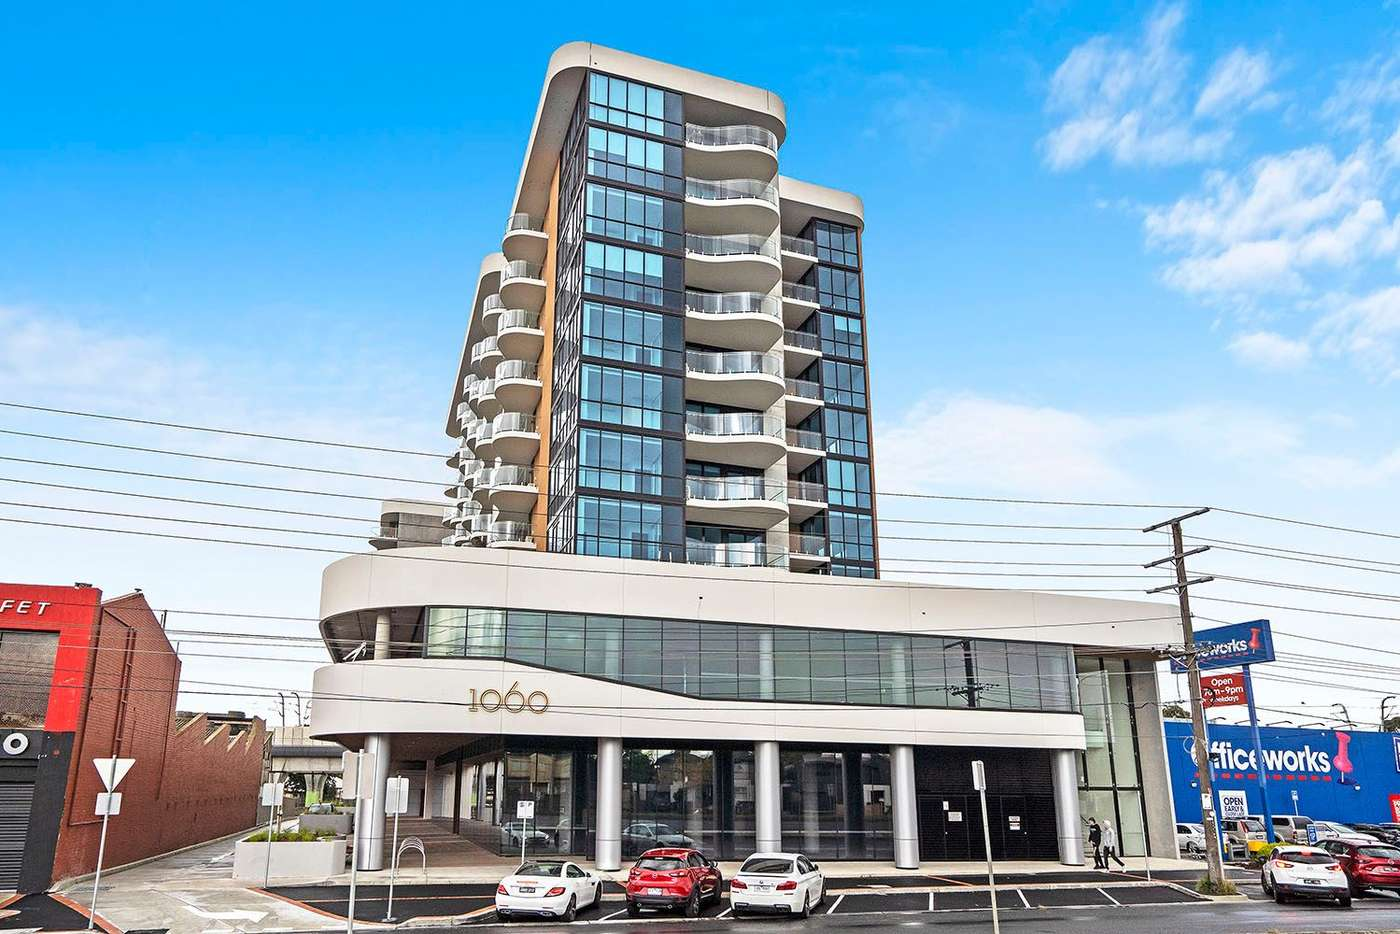 Main view of Homely apartment listing, 307/1060 Dandenong Road, Carnegie VIC 3163